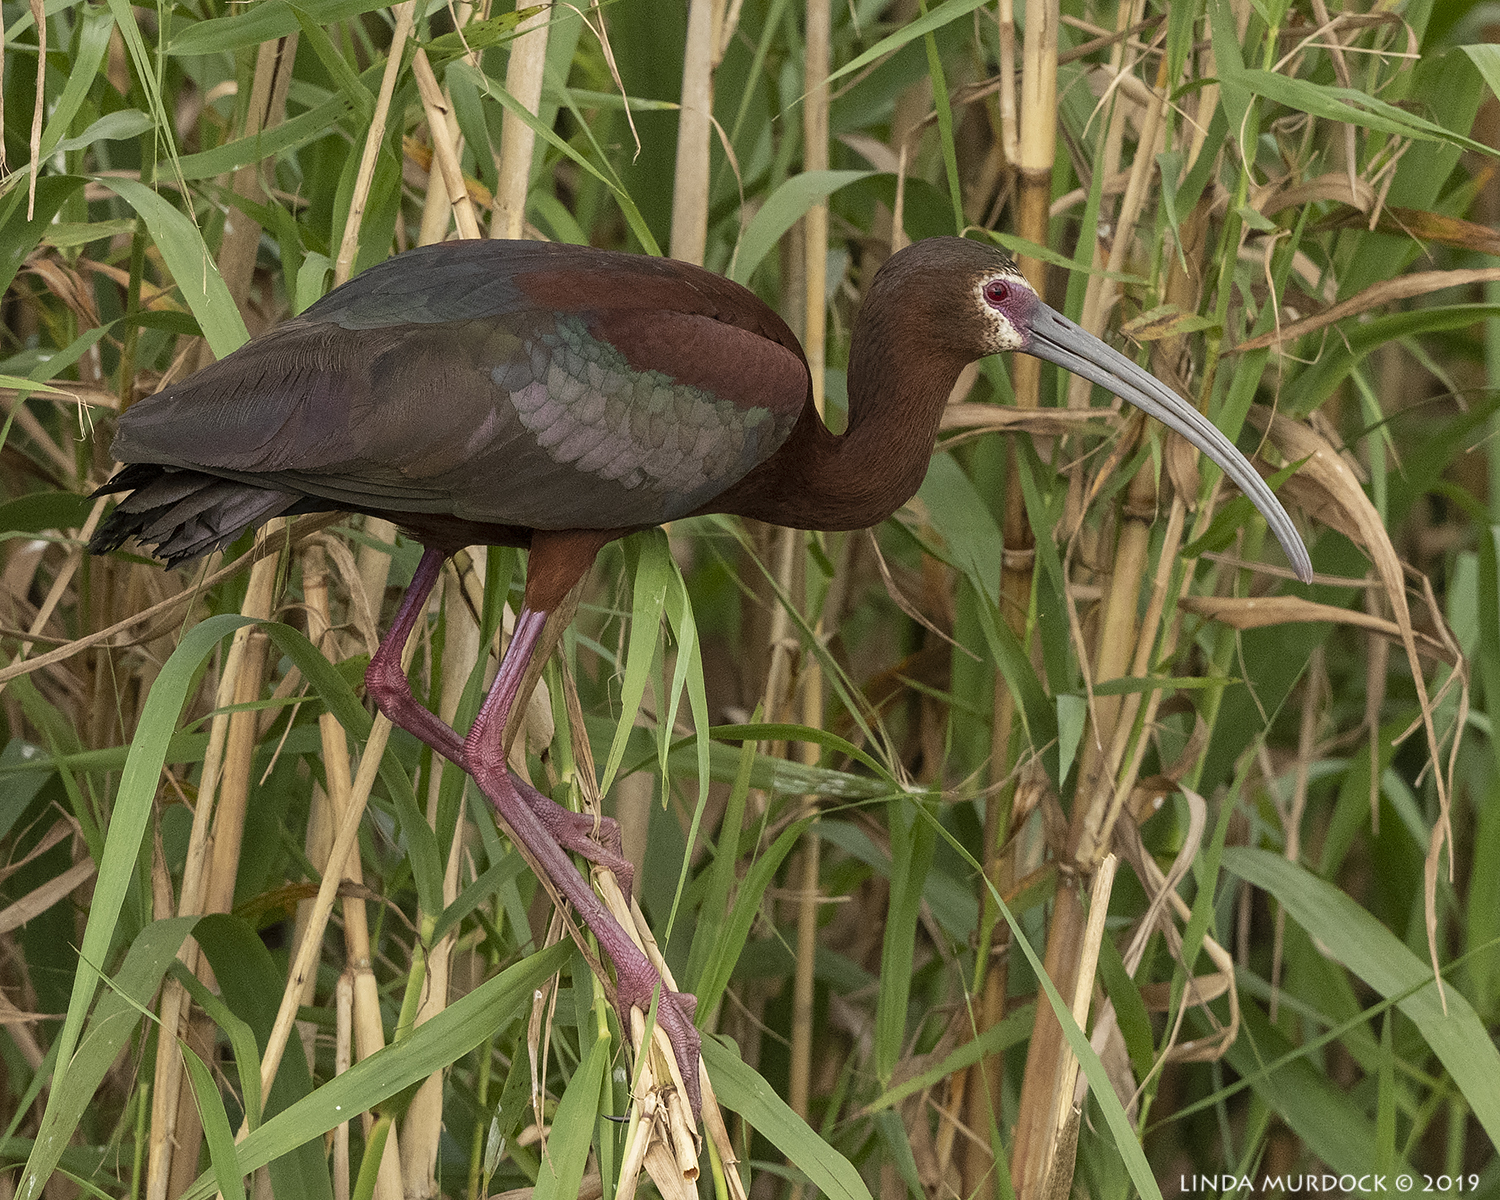 Lovely White-faced Ibis posing for you Nikon D850 with Nikkor 500 f/5.6 PF VR ~ 1/2500 sec f/6.3 ISO 1250